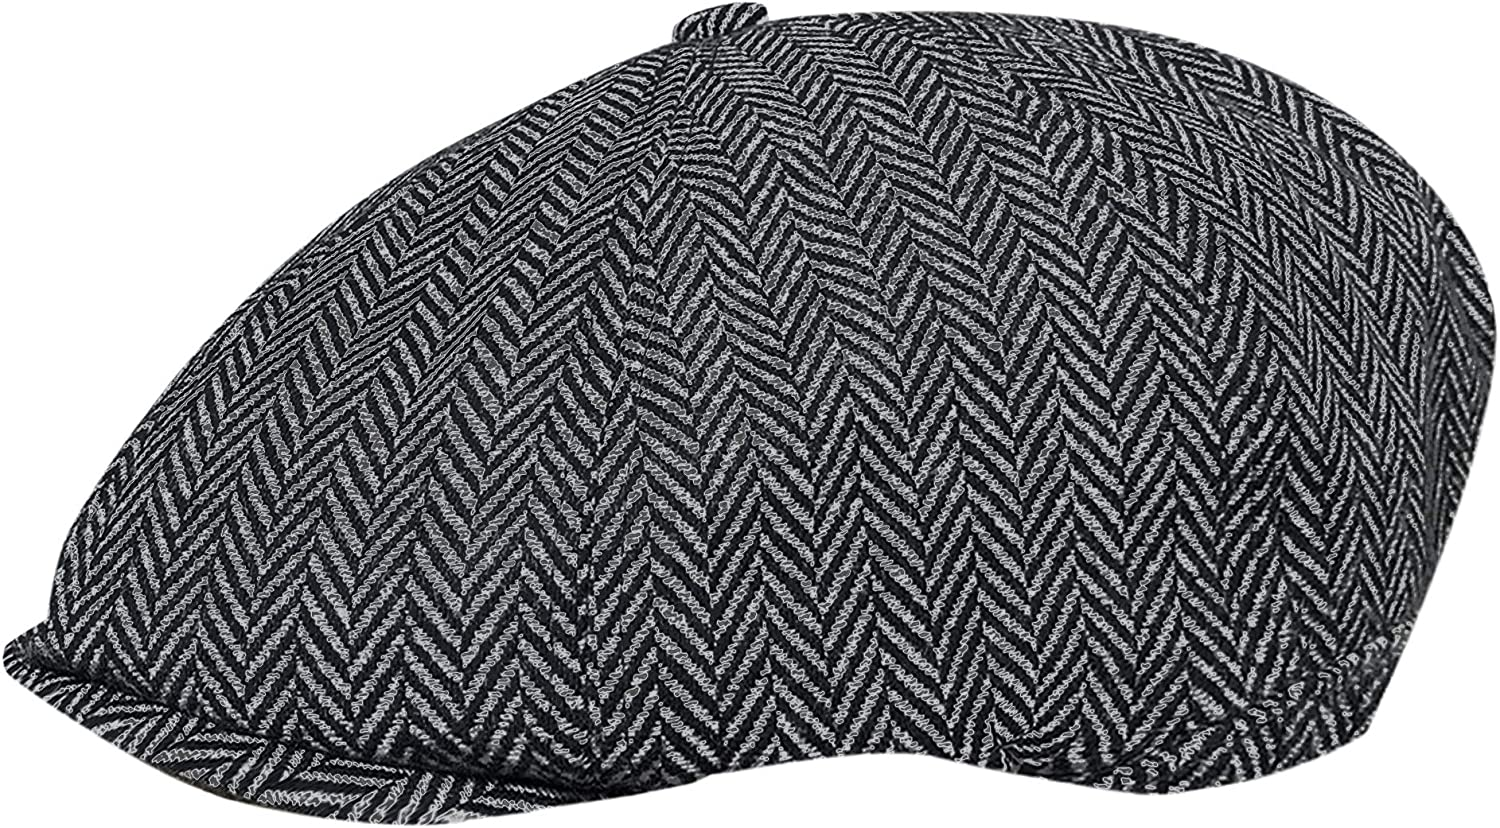 Ladies 8 Panel Herringbone Tweed Wool Blend Baker Boy Newsboy Flat Gatsby Hat Cap TOSKATOK/® Unisex Mens